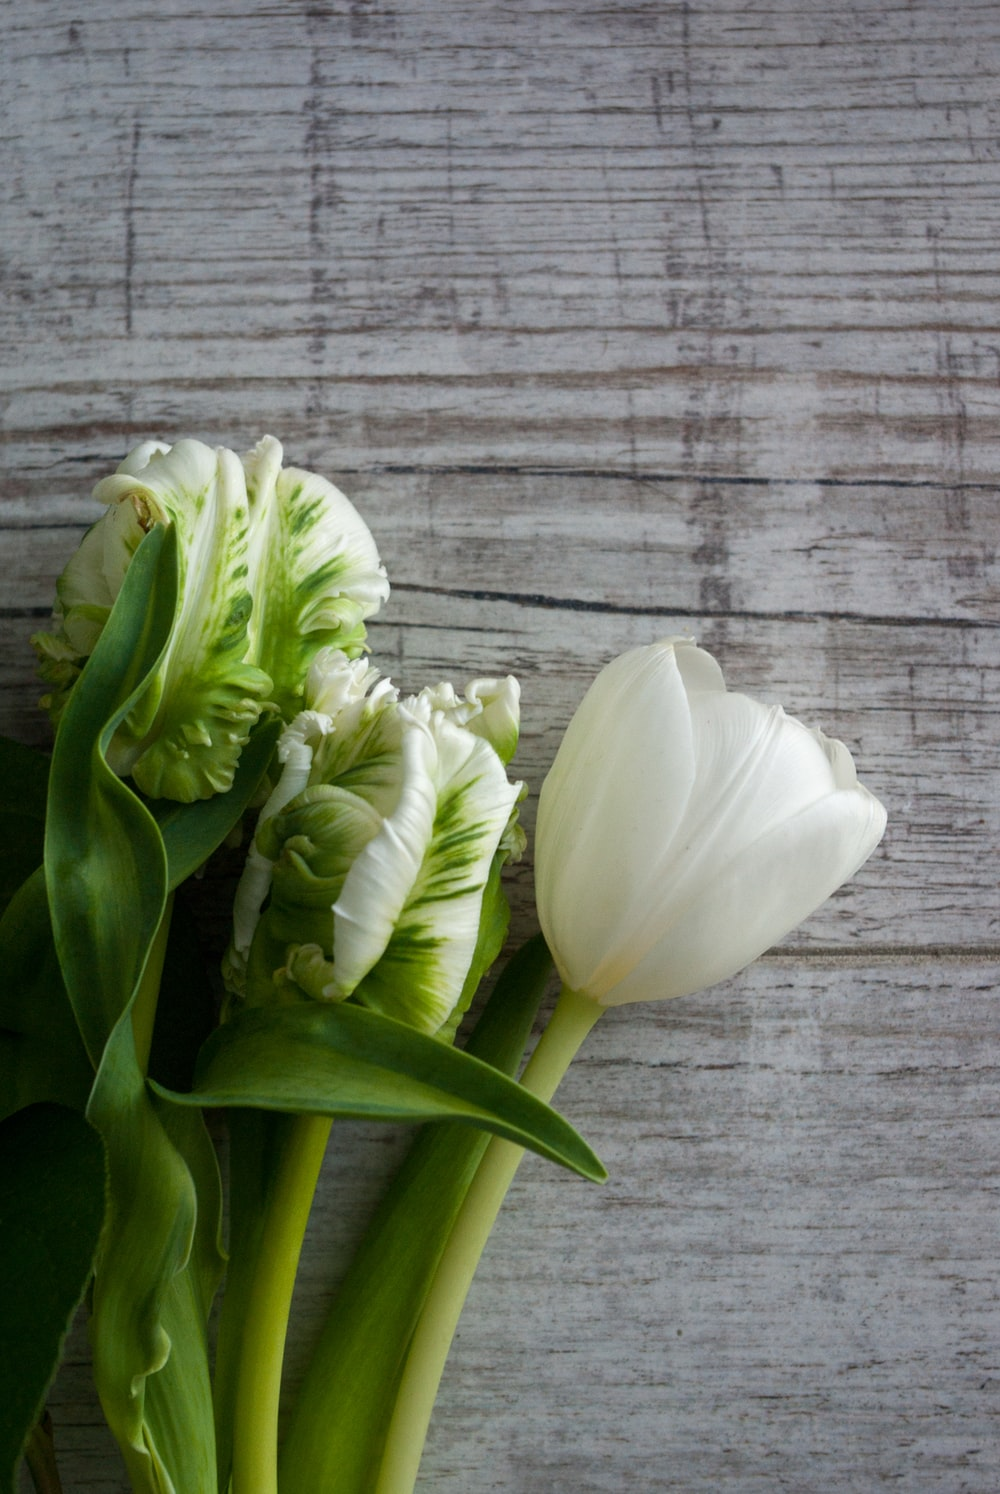 white tulips on gray wooden surface